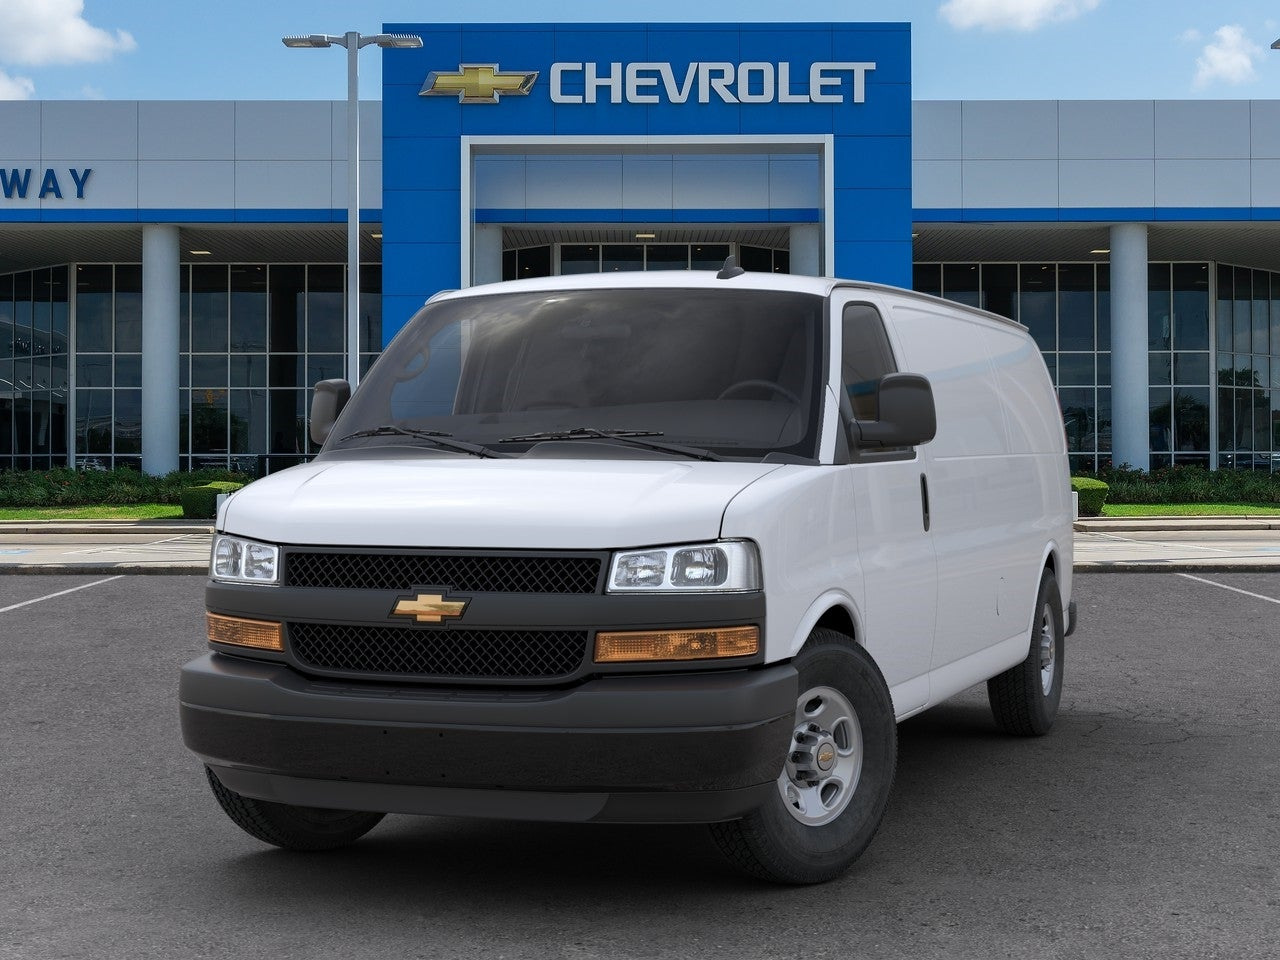 2020 chevrolet express cargo 3500 wt in tomball tx houston chevrolet express cargo 3500 parkway chevrolet 2020 chevrolet express cargo 3500 wt